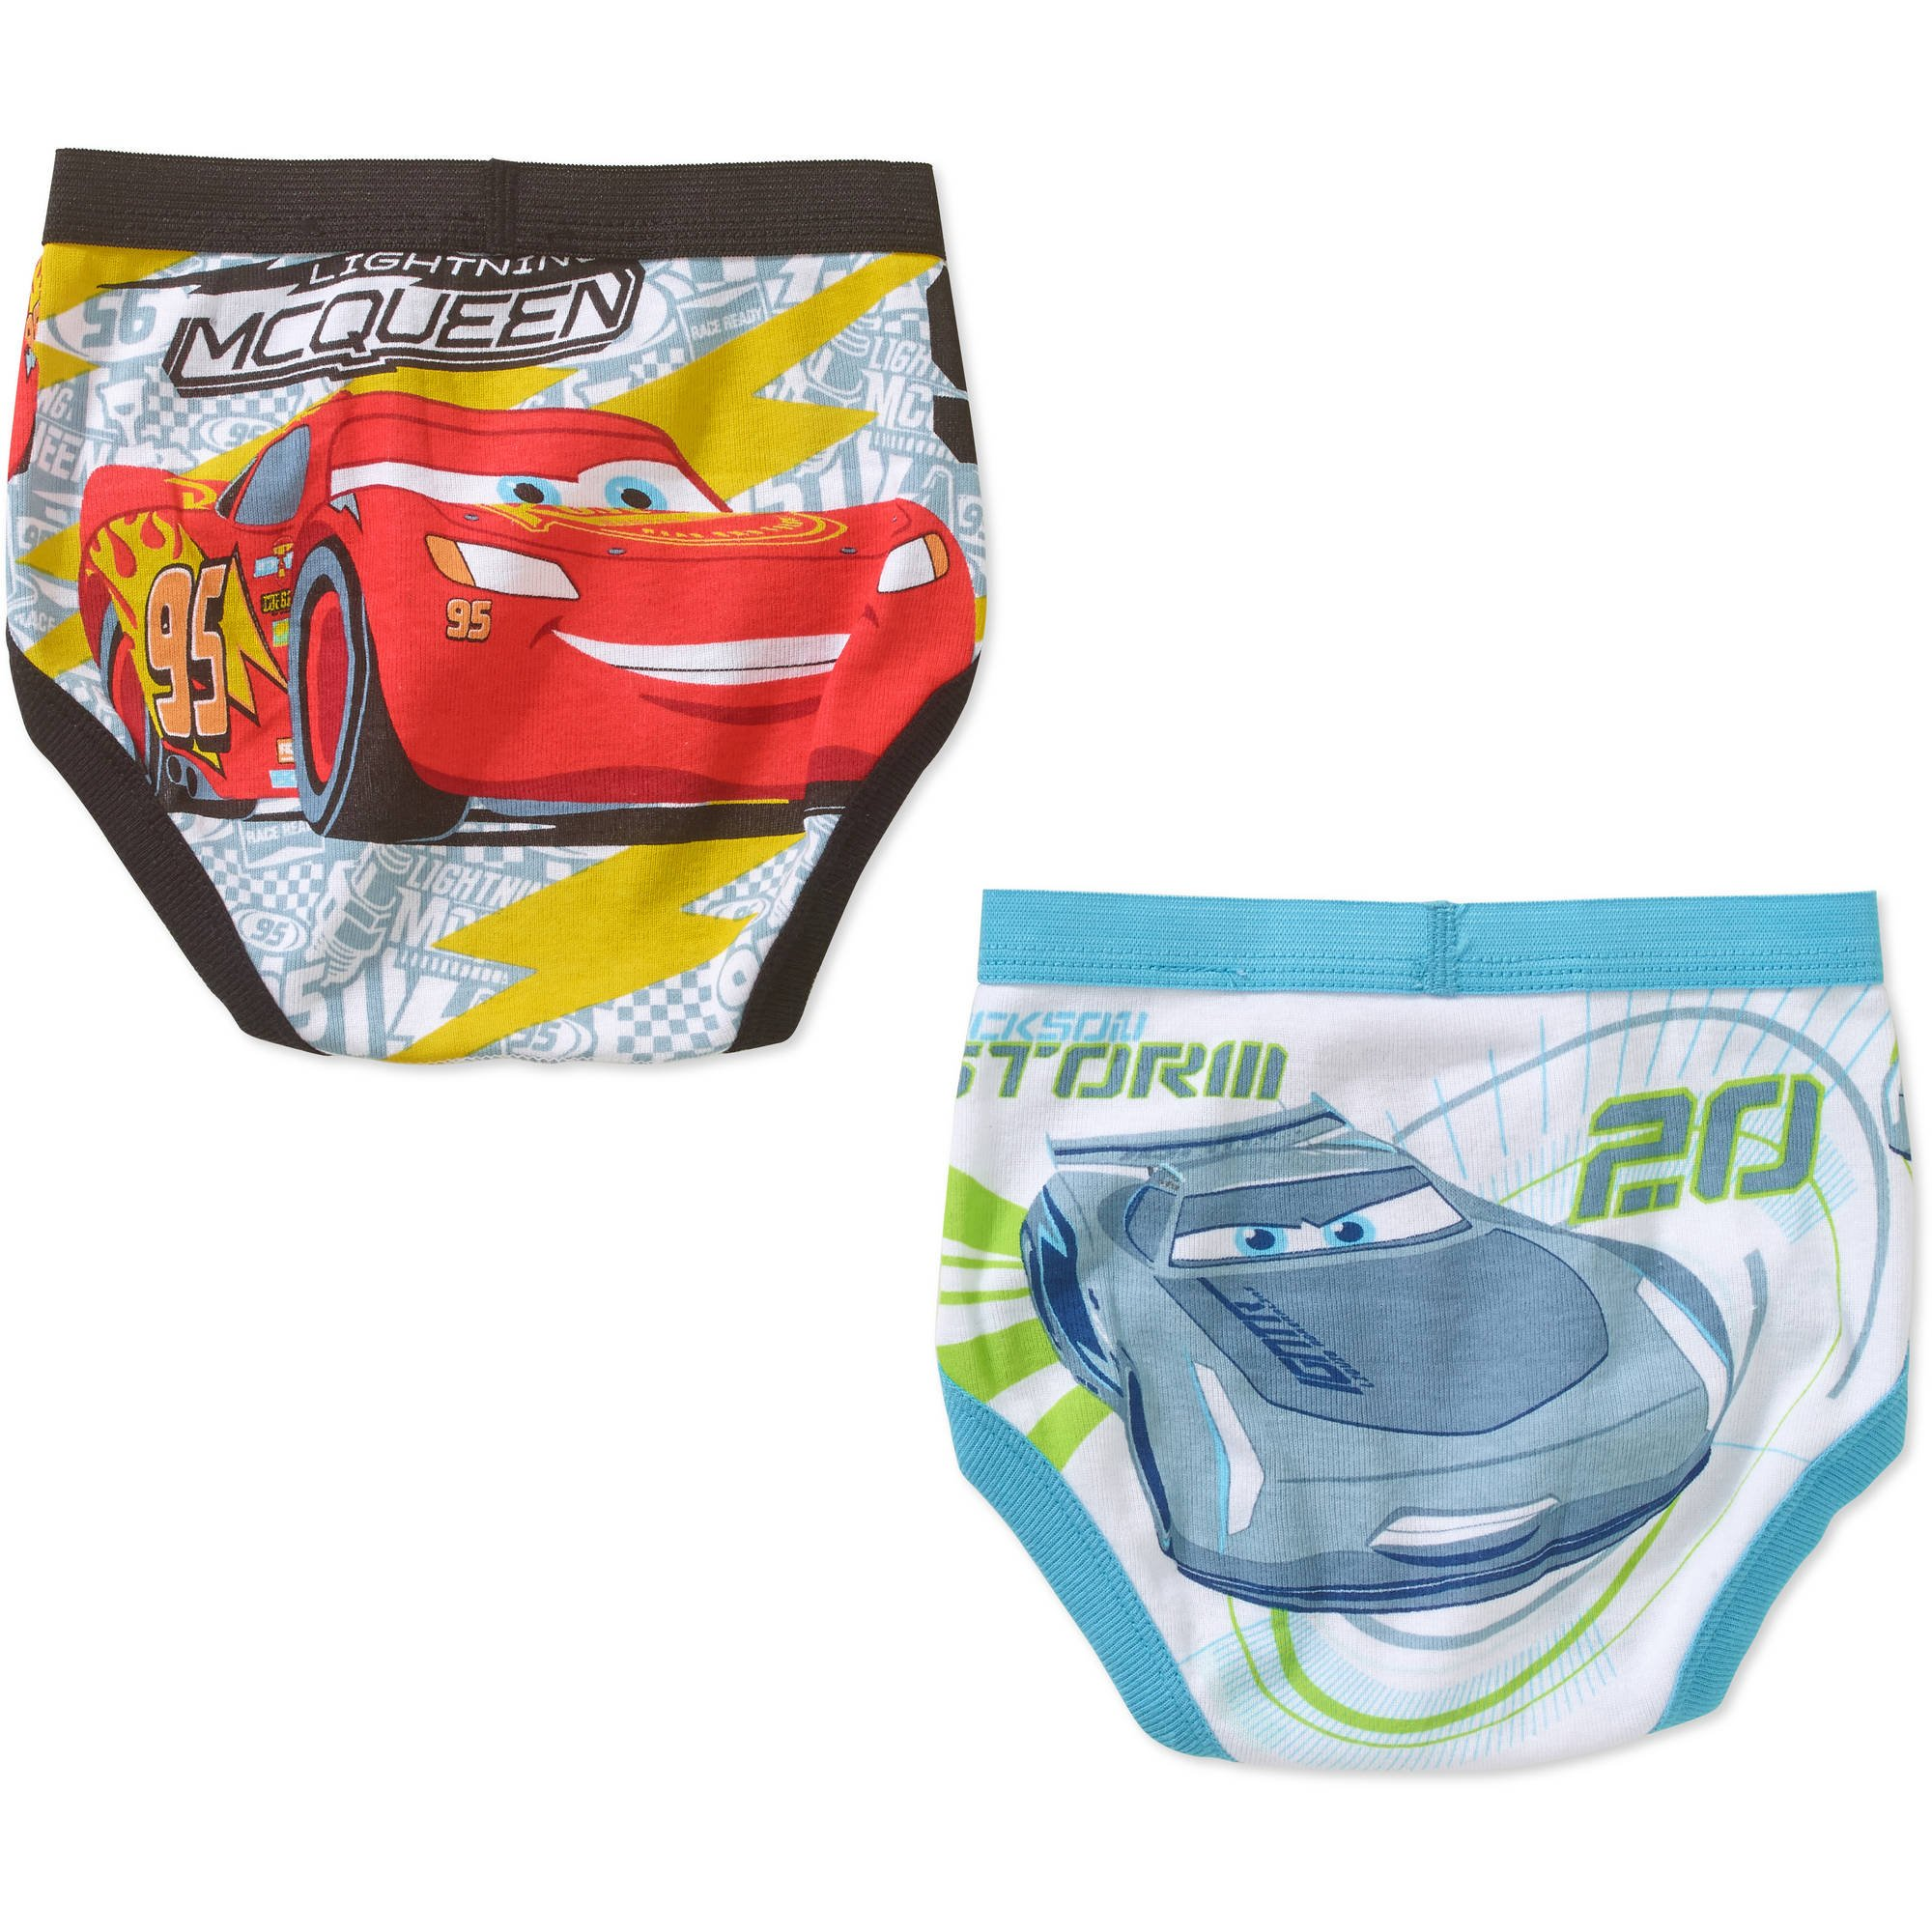 Handcraft Disney Pixar Cars Toddler Boys' Underwear Briefs, 3 Pack, Size 4T